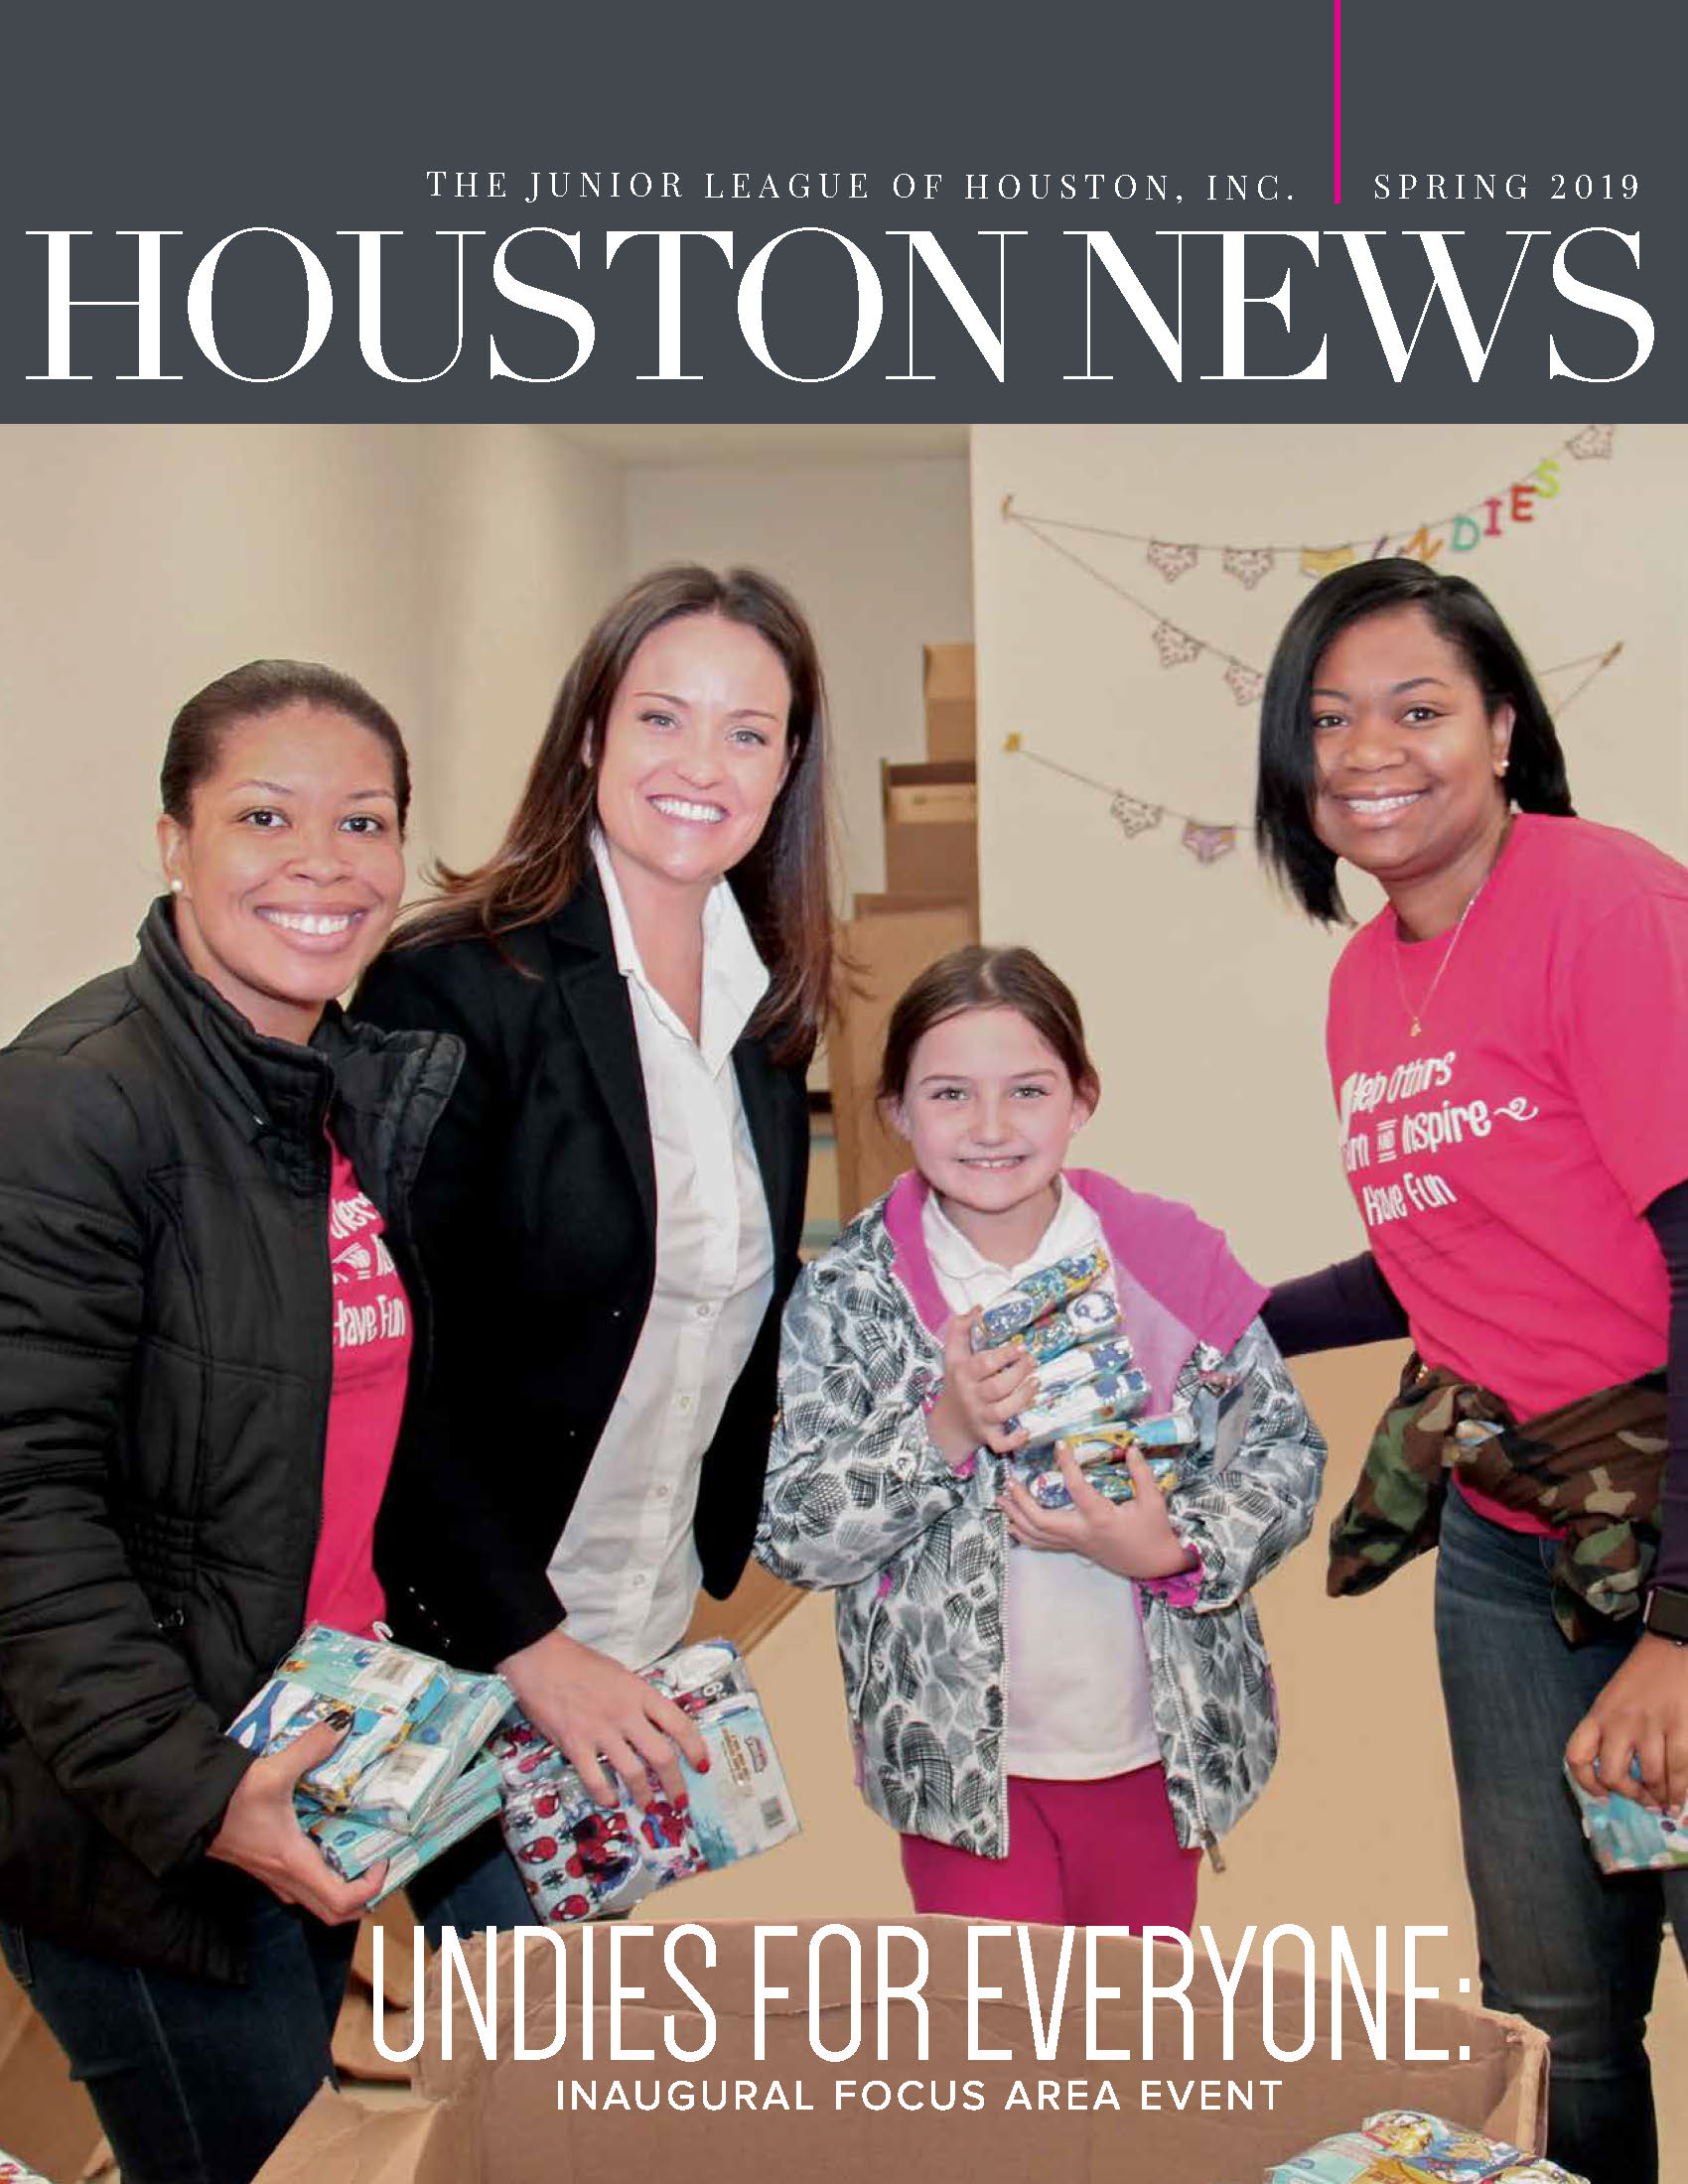 The Junior League of Houston, Inc